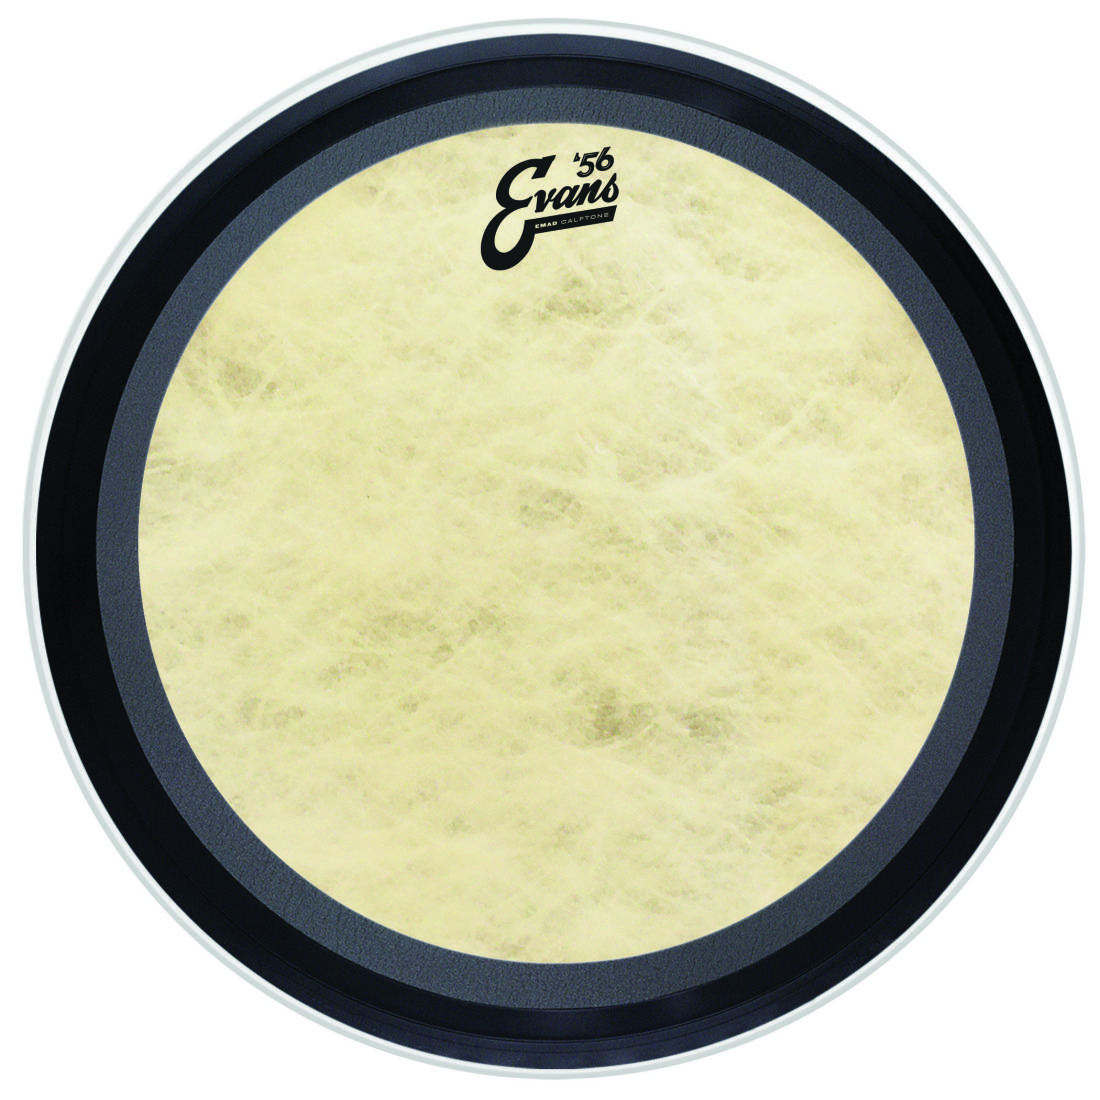 evans emad calftone bass drum head 16 inch long mcquade musical instruments. Black Bedroom Furniture Sets. Home Design Ideas